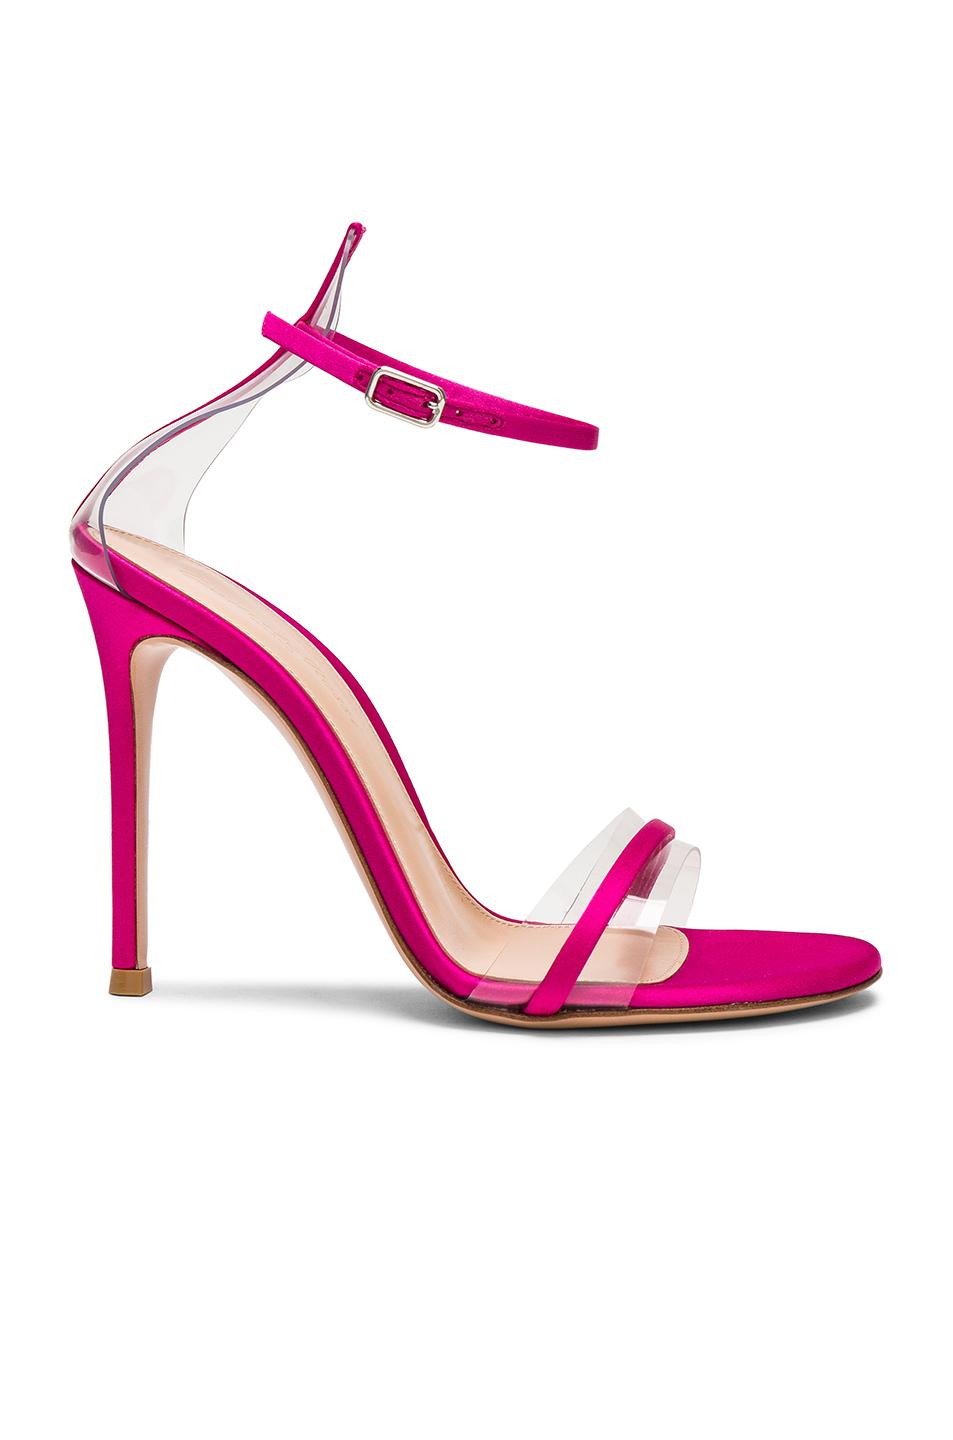 1efb0a0e5 Gianvito Rossi Satin Plexi G String Heels In Pink